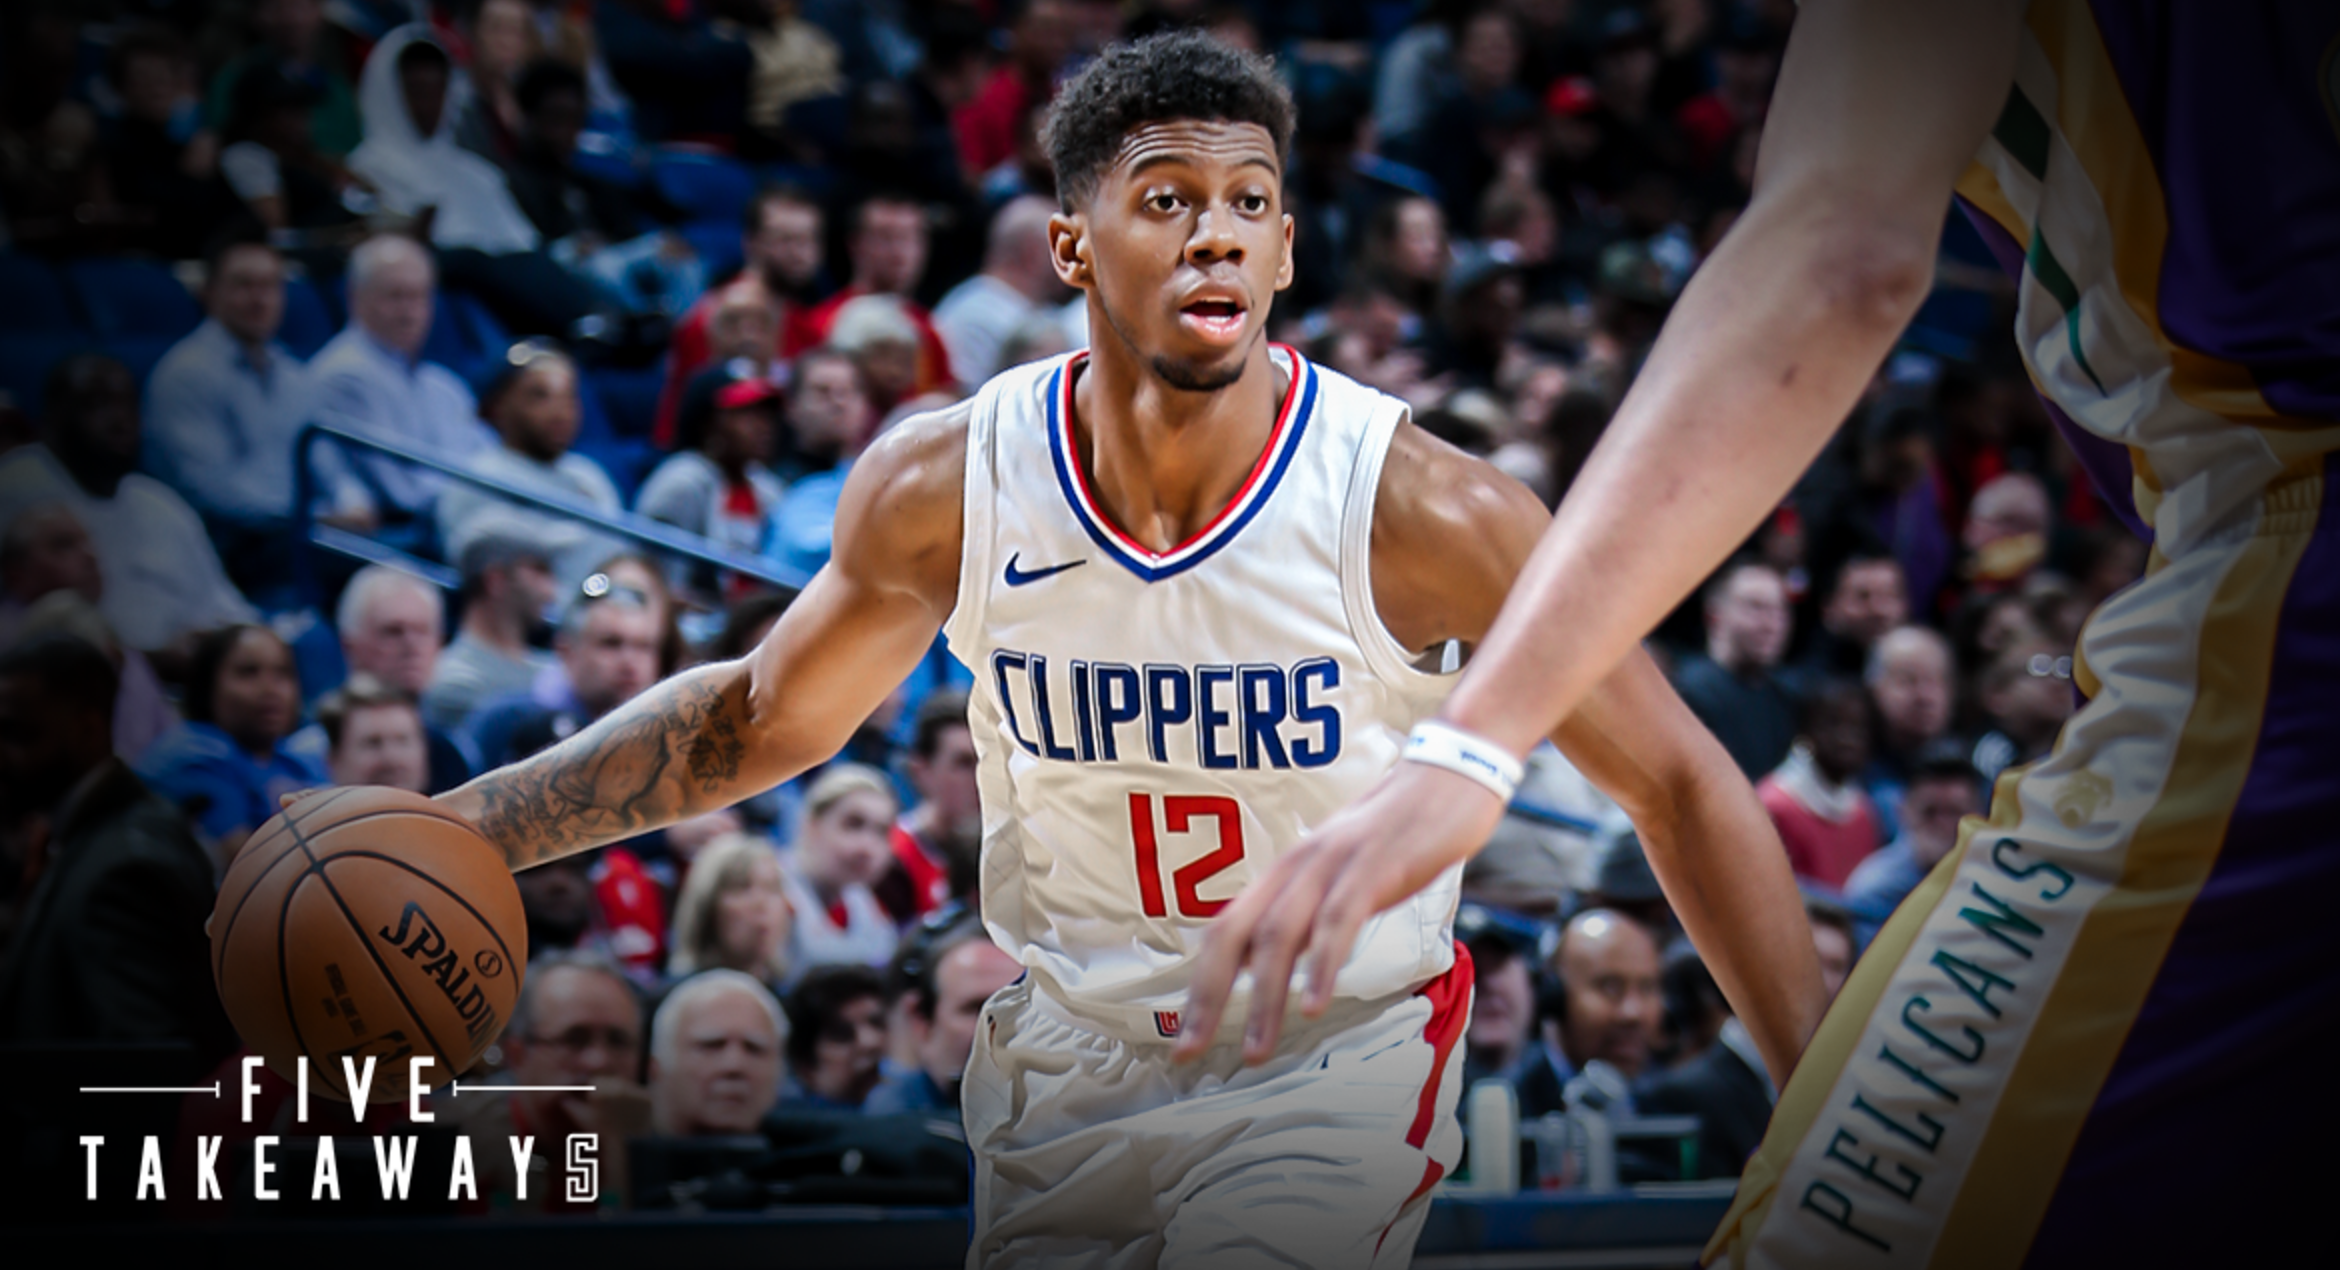 Game Recap - Clippers vs Pelicans